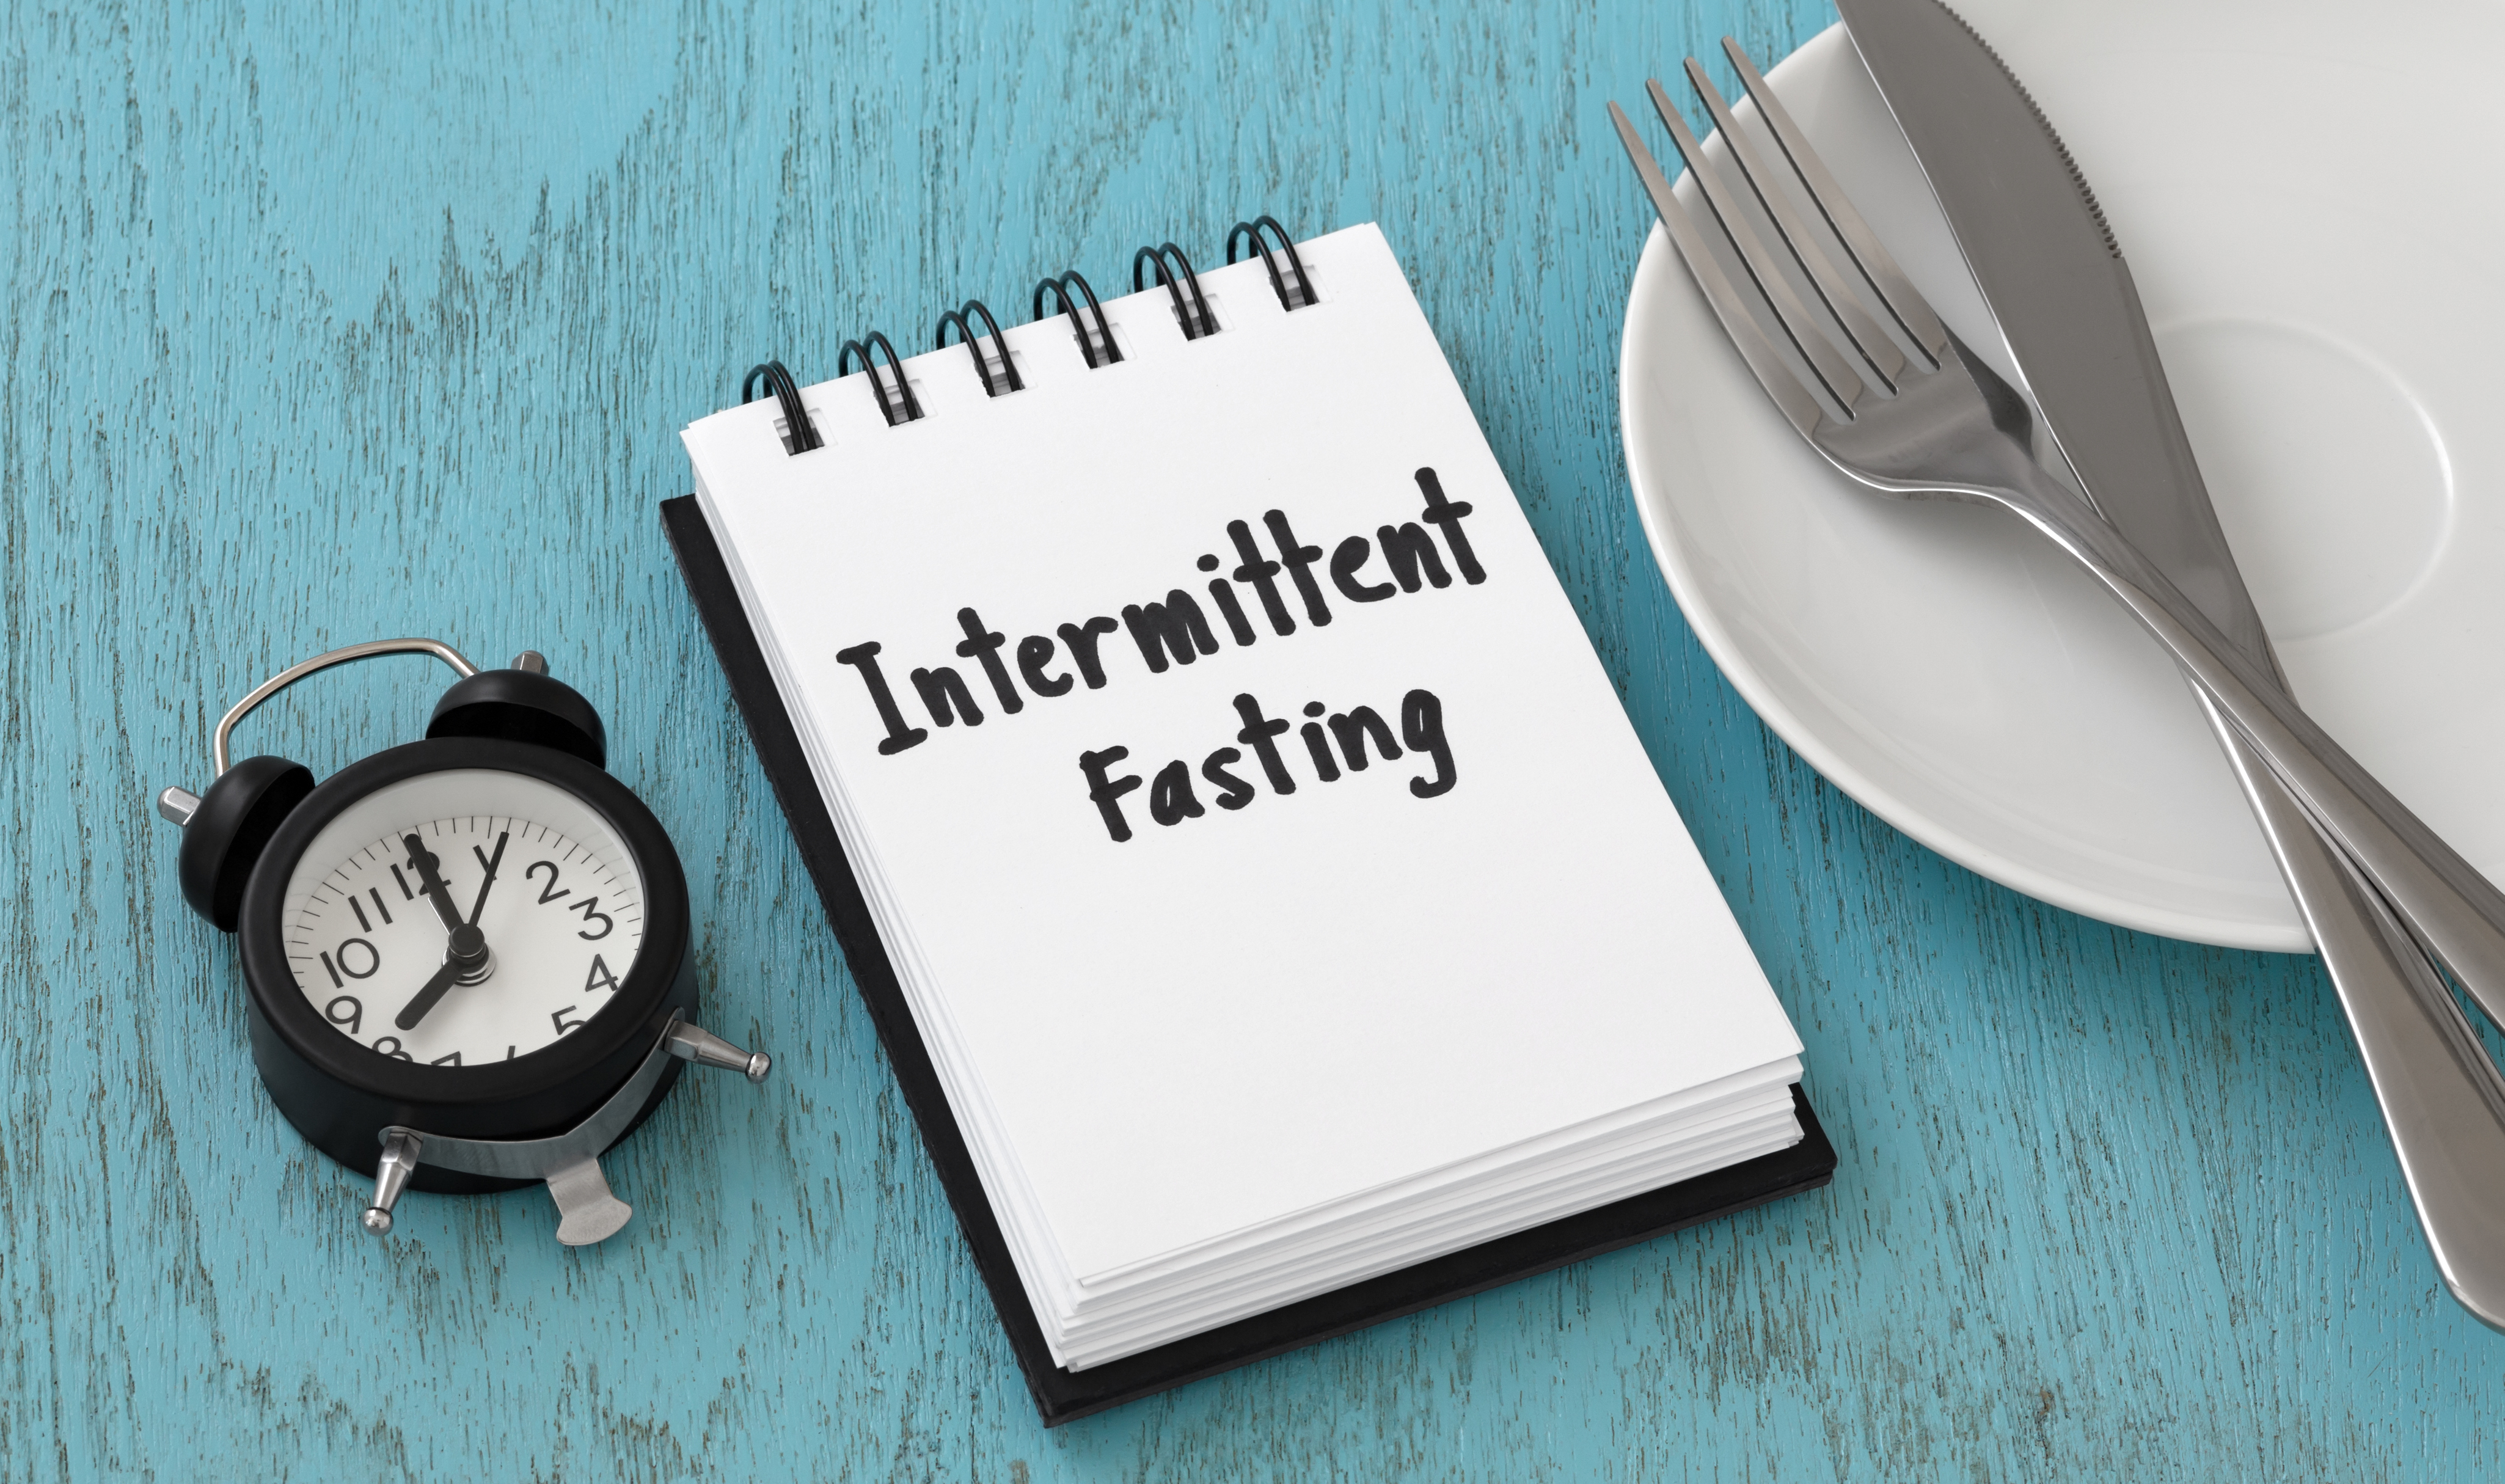 Intermittent fasting refers to an eating pattern that swings between periods of eating very little or nothing (fasting), and, eating regular meals